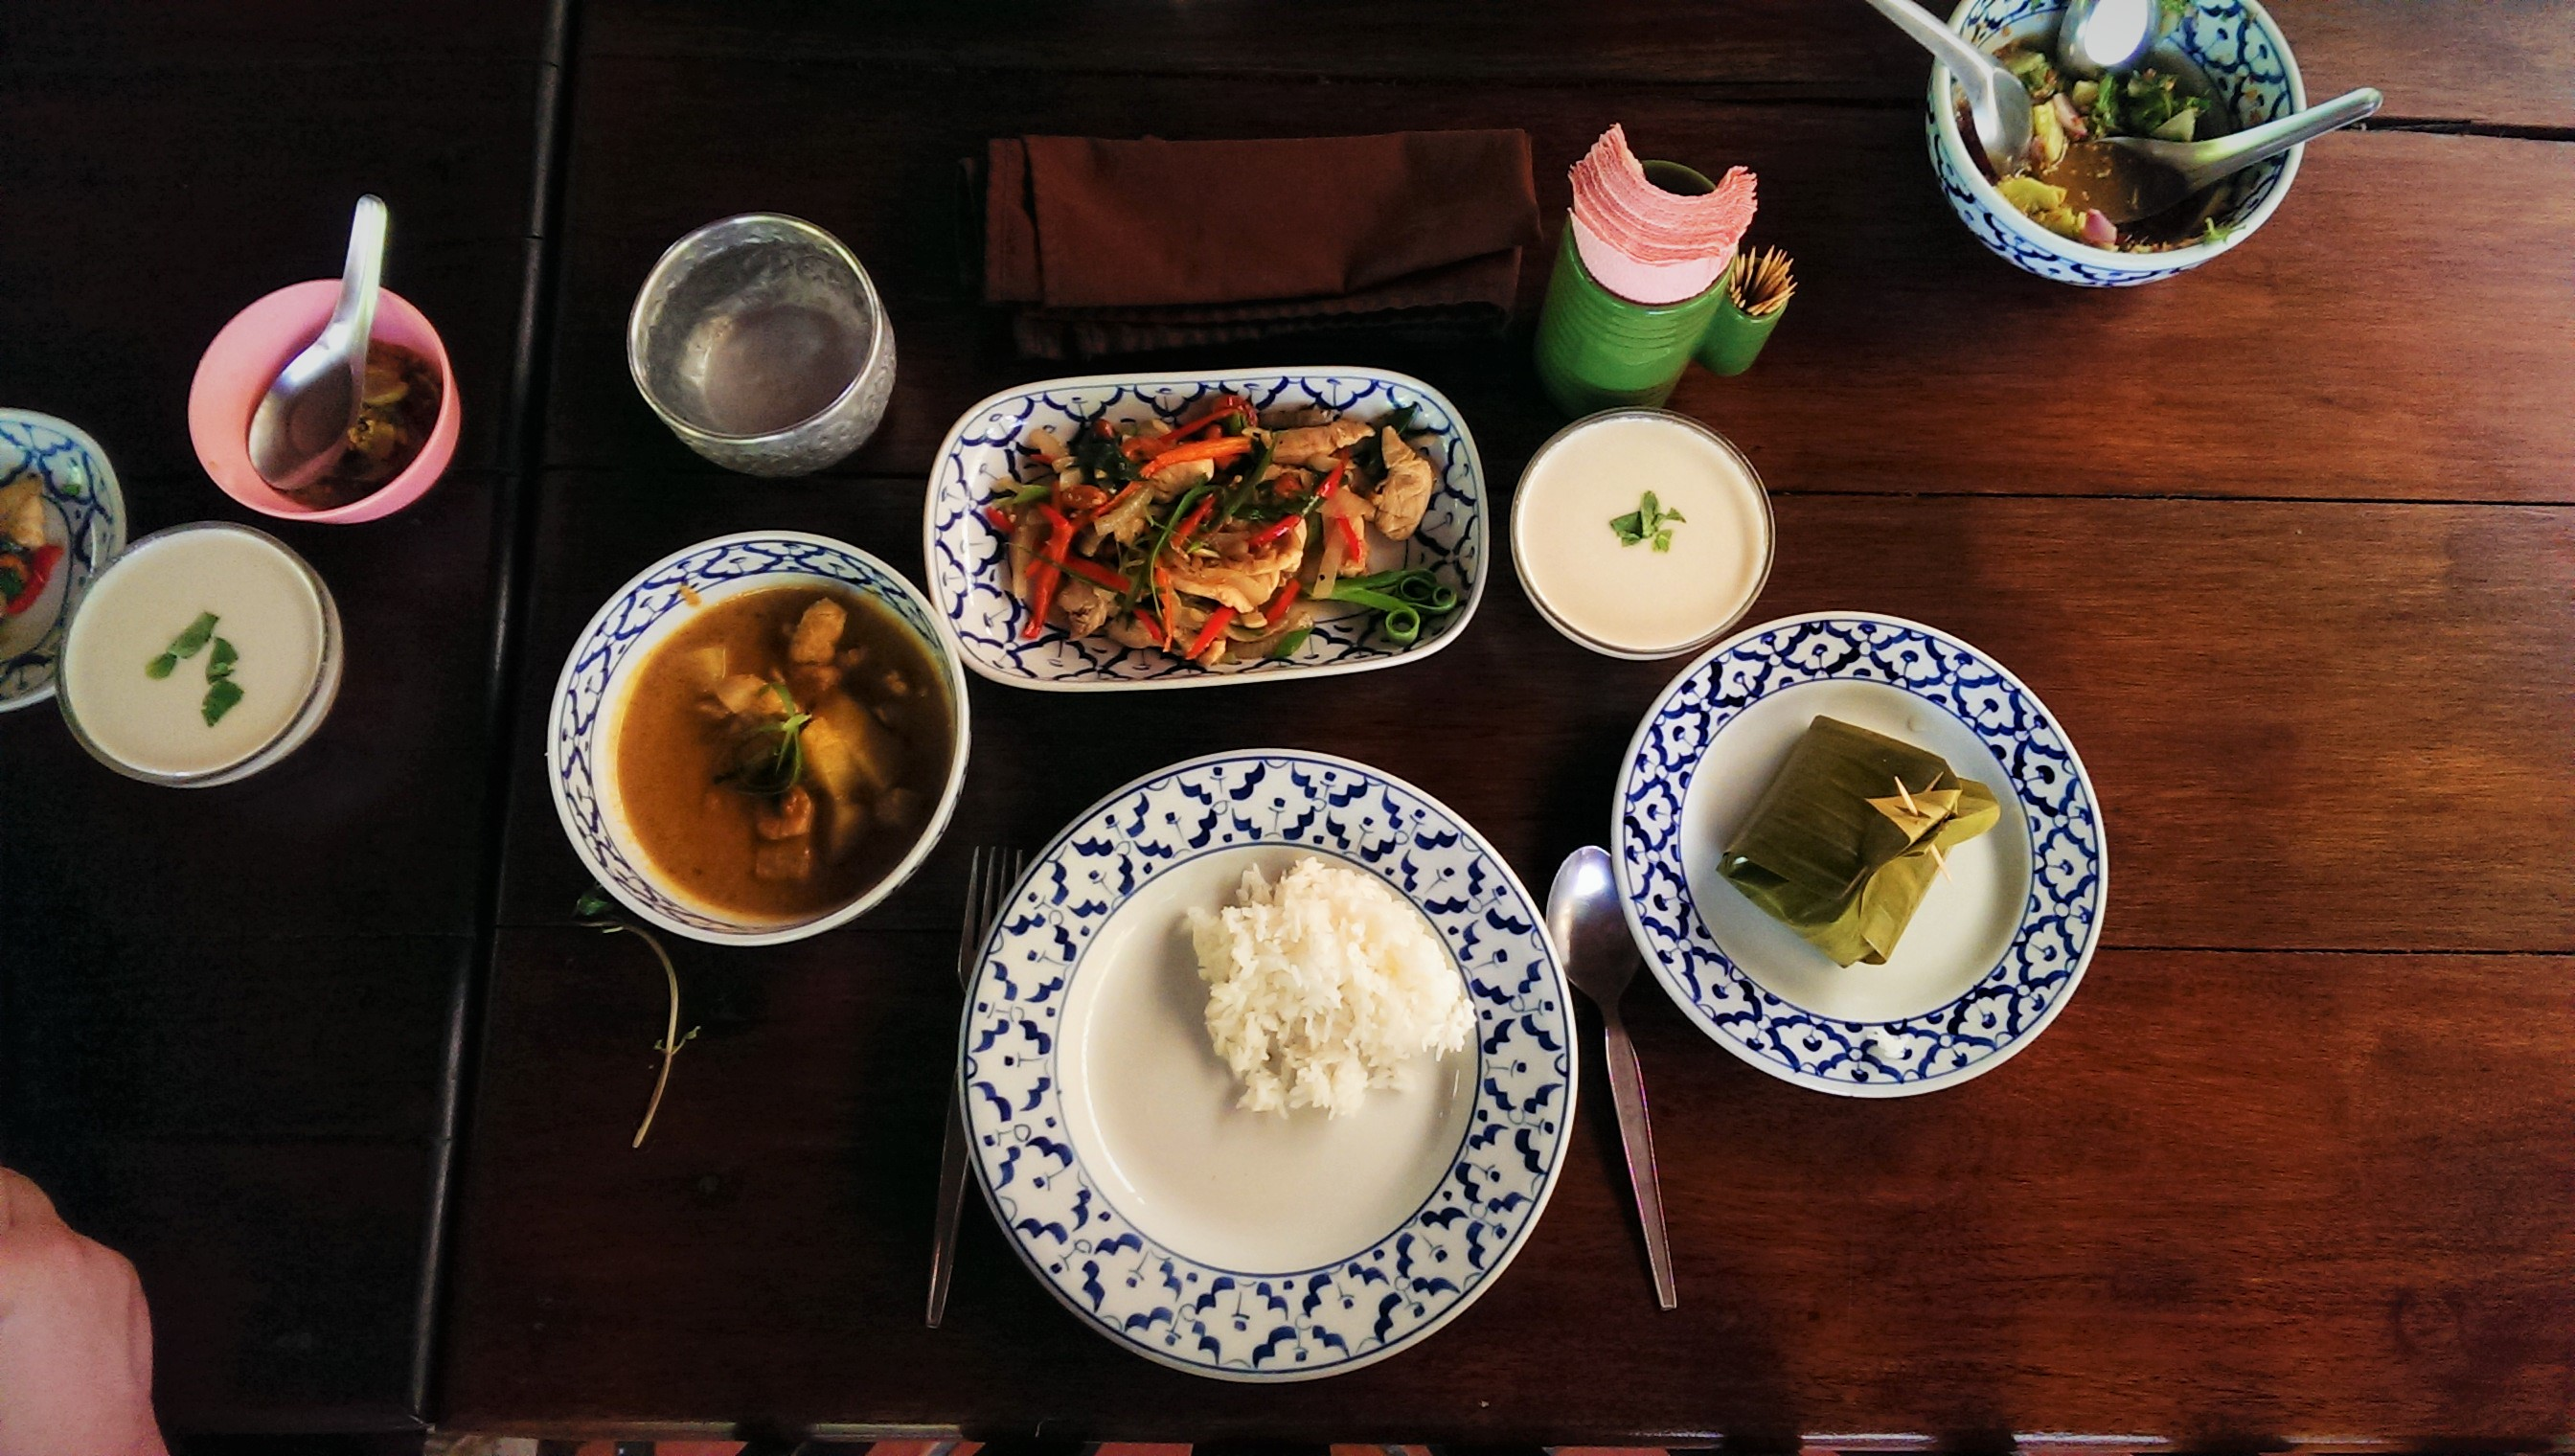 Carry It Like Harry - Experience the taste of Lanna cuisine by taking a cooking class in Chiang Mai